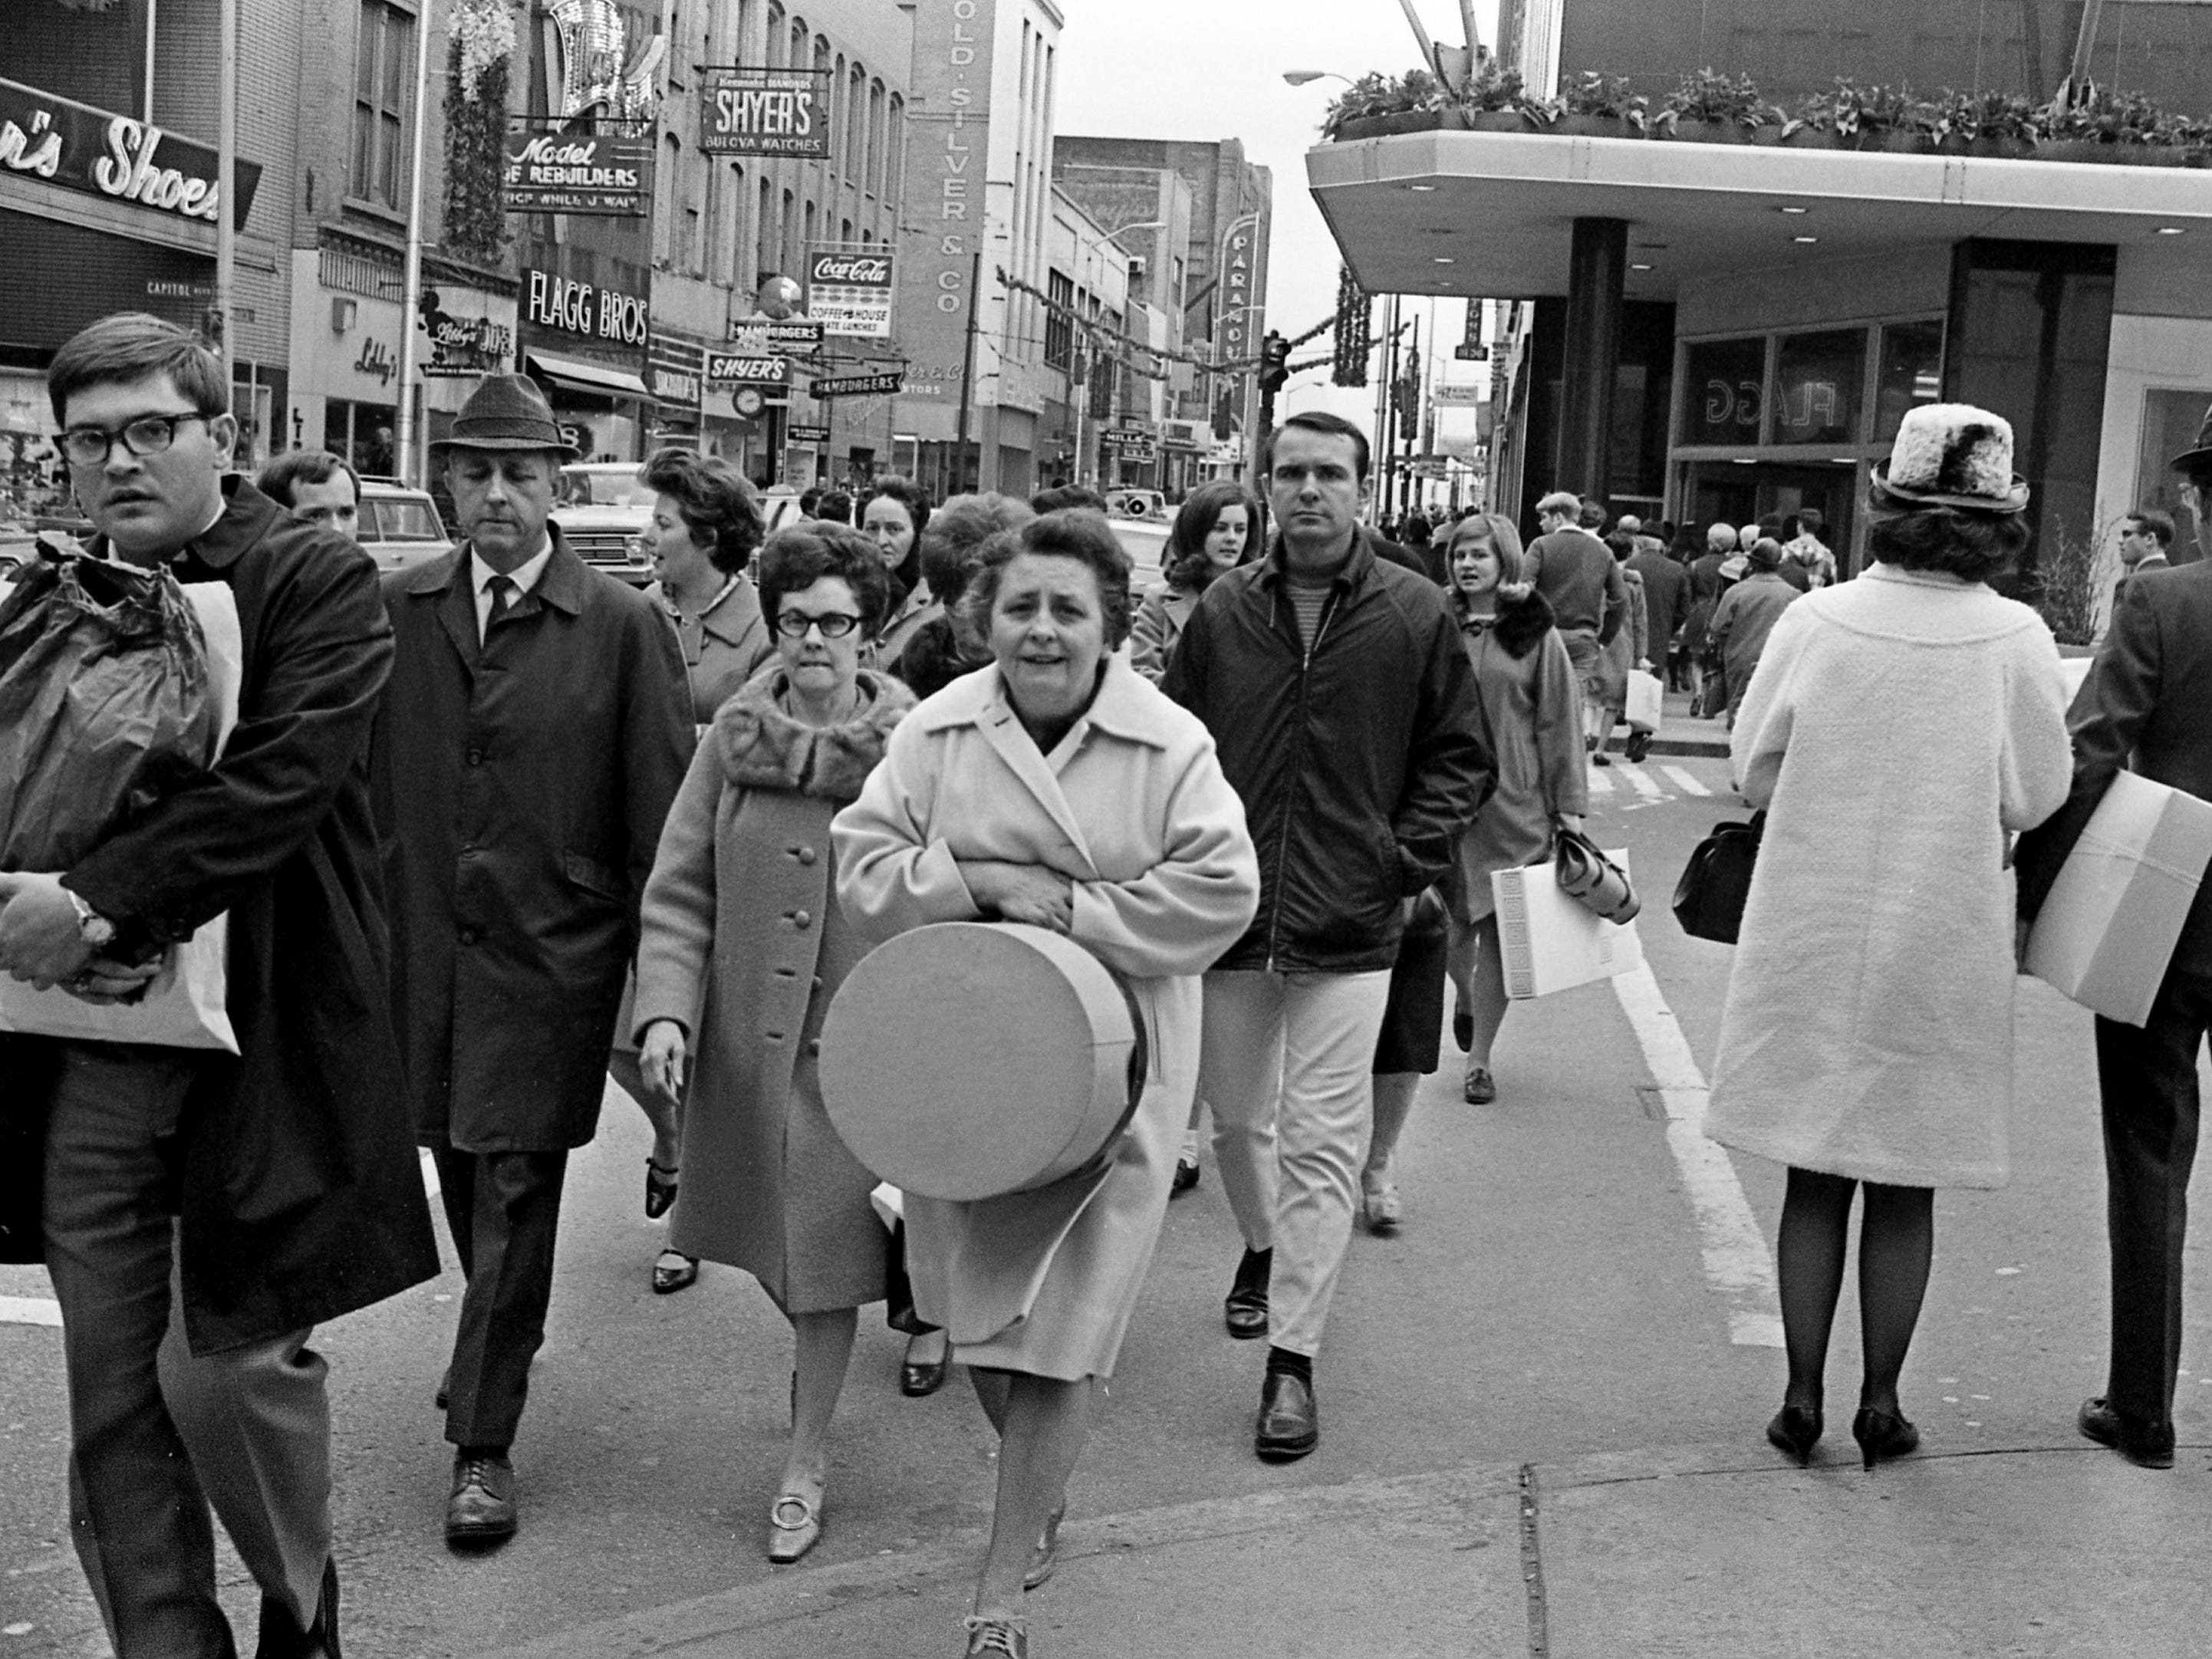 Church Street in downtown Nashville is packed as shoppers check out the day after Christmas sales Dec. 26, 1968.